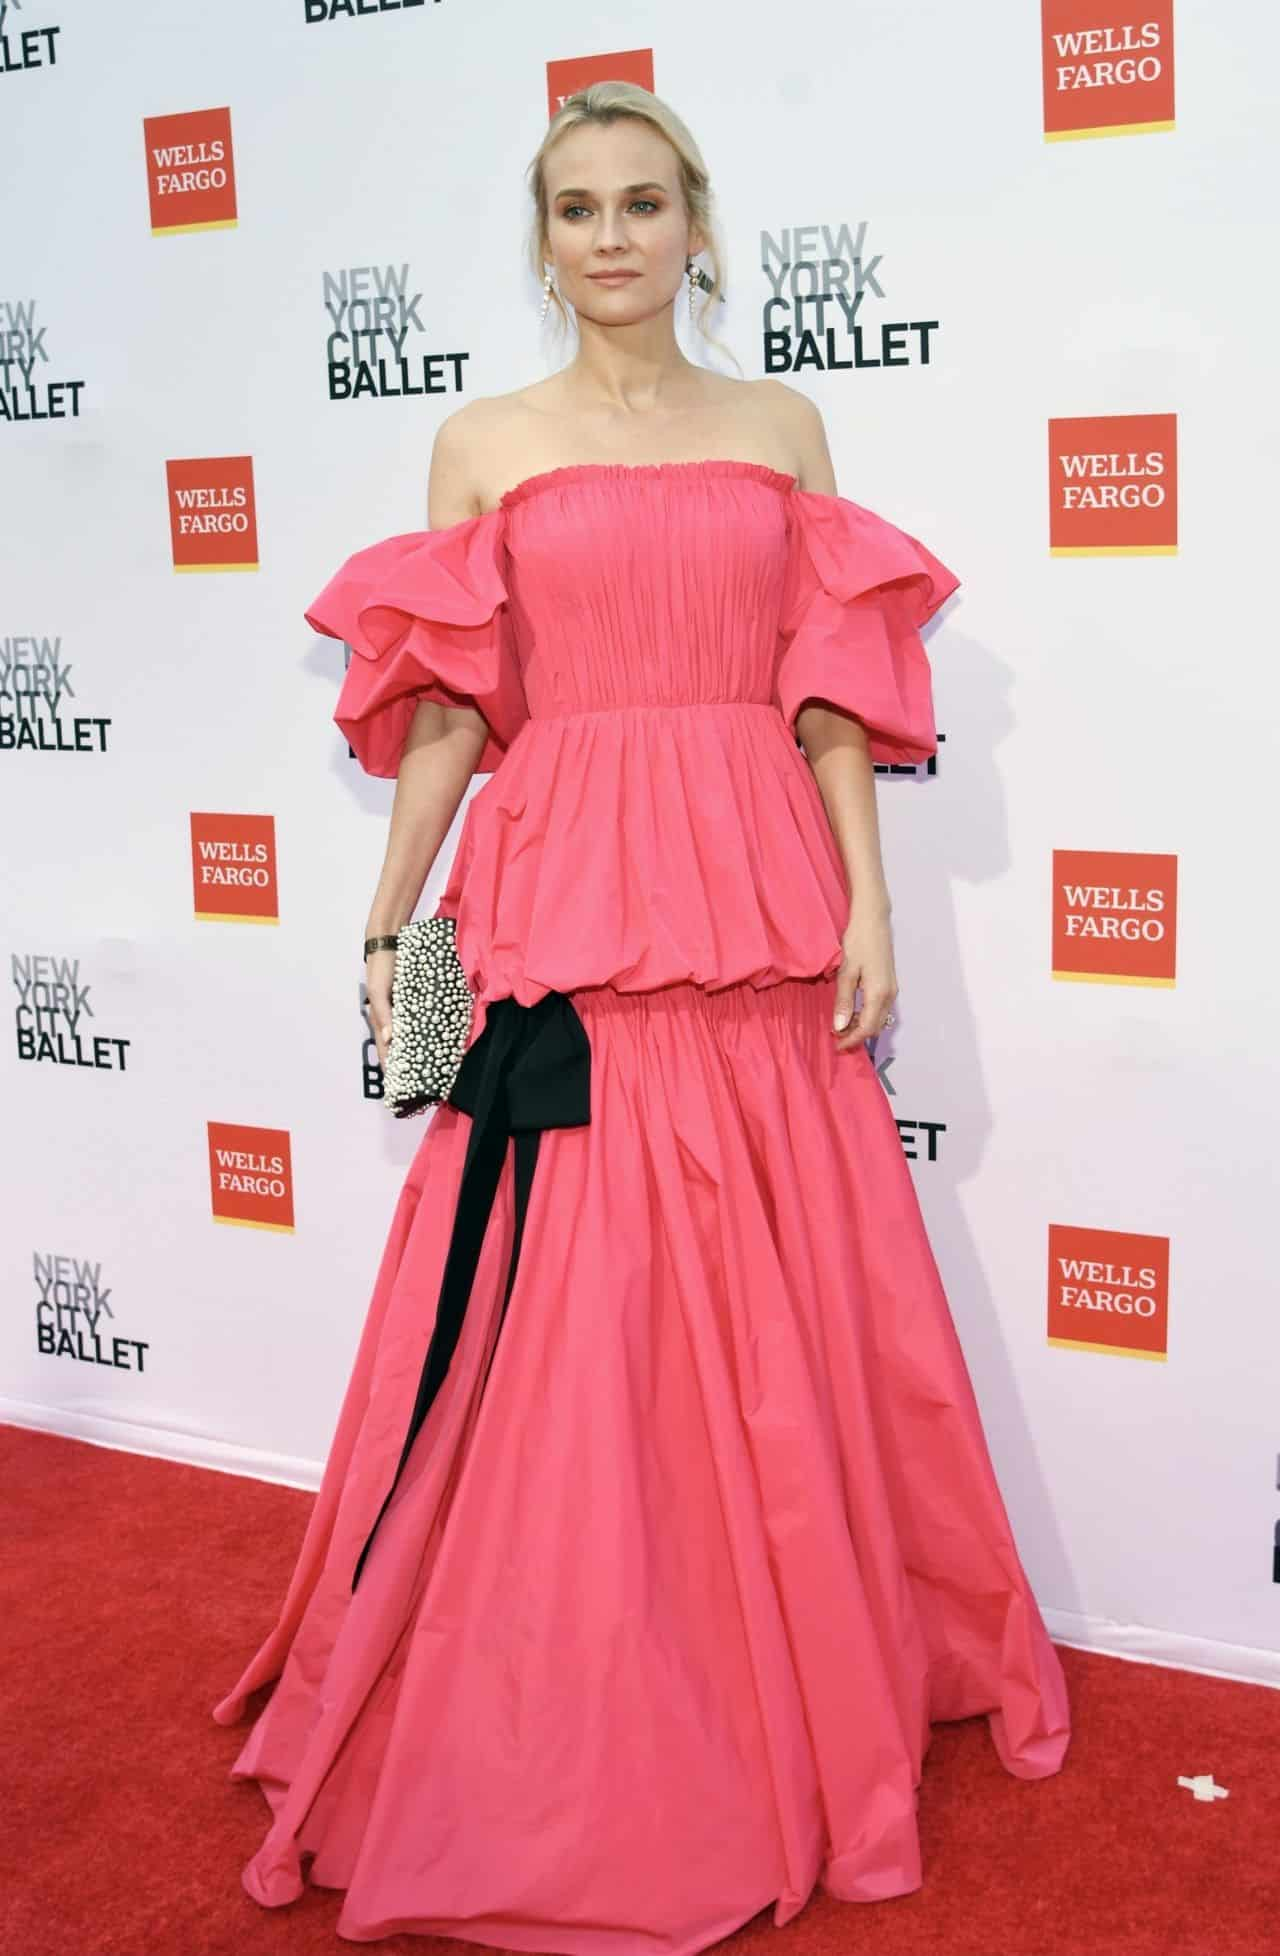 Diane Kruger Shines on the Red Carpet at NYC Ballet's Fall Fashion Gala